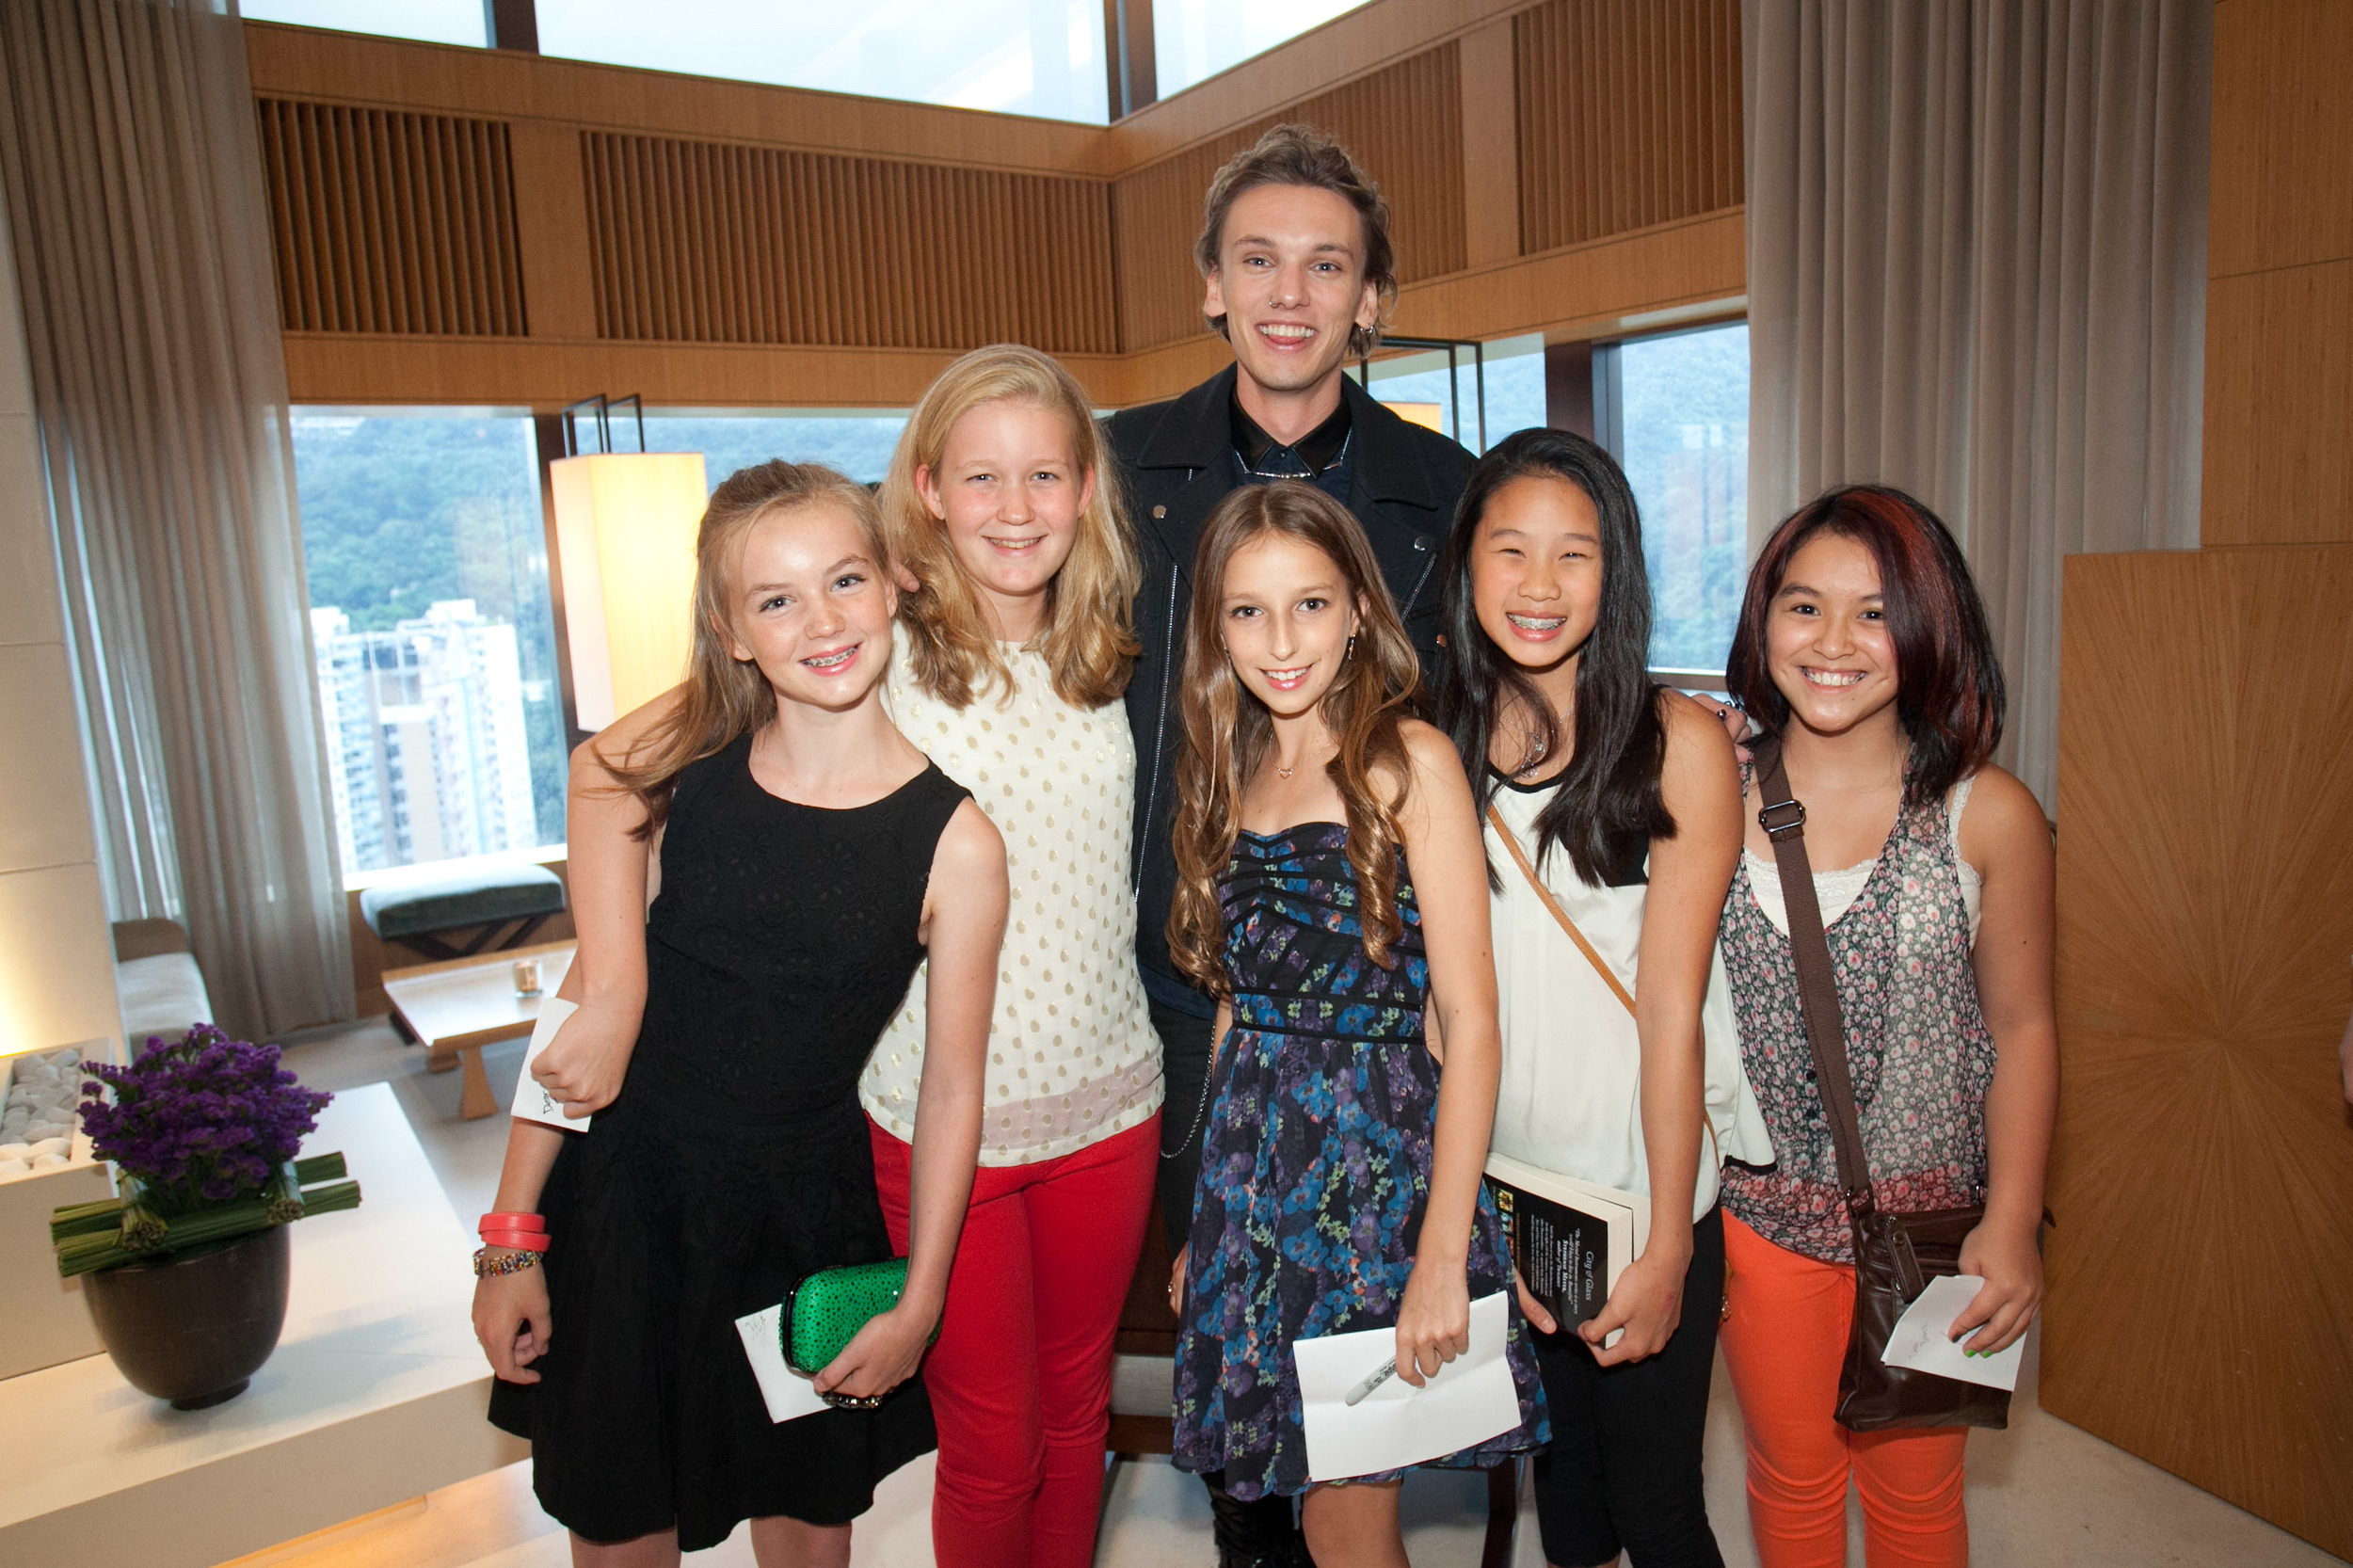 Jamie Campbell Bower and some young guests